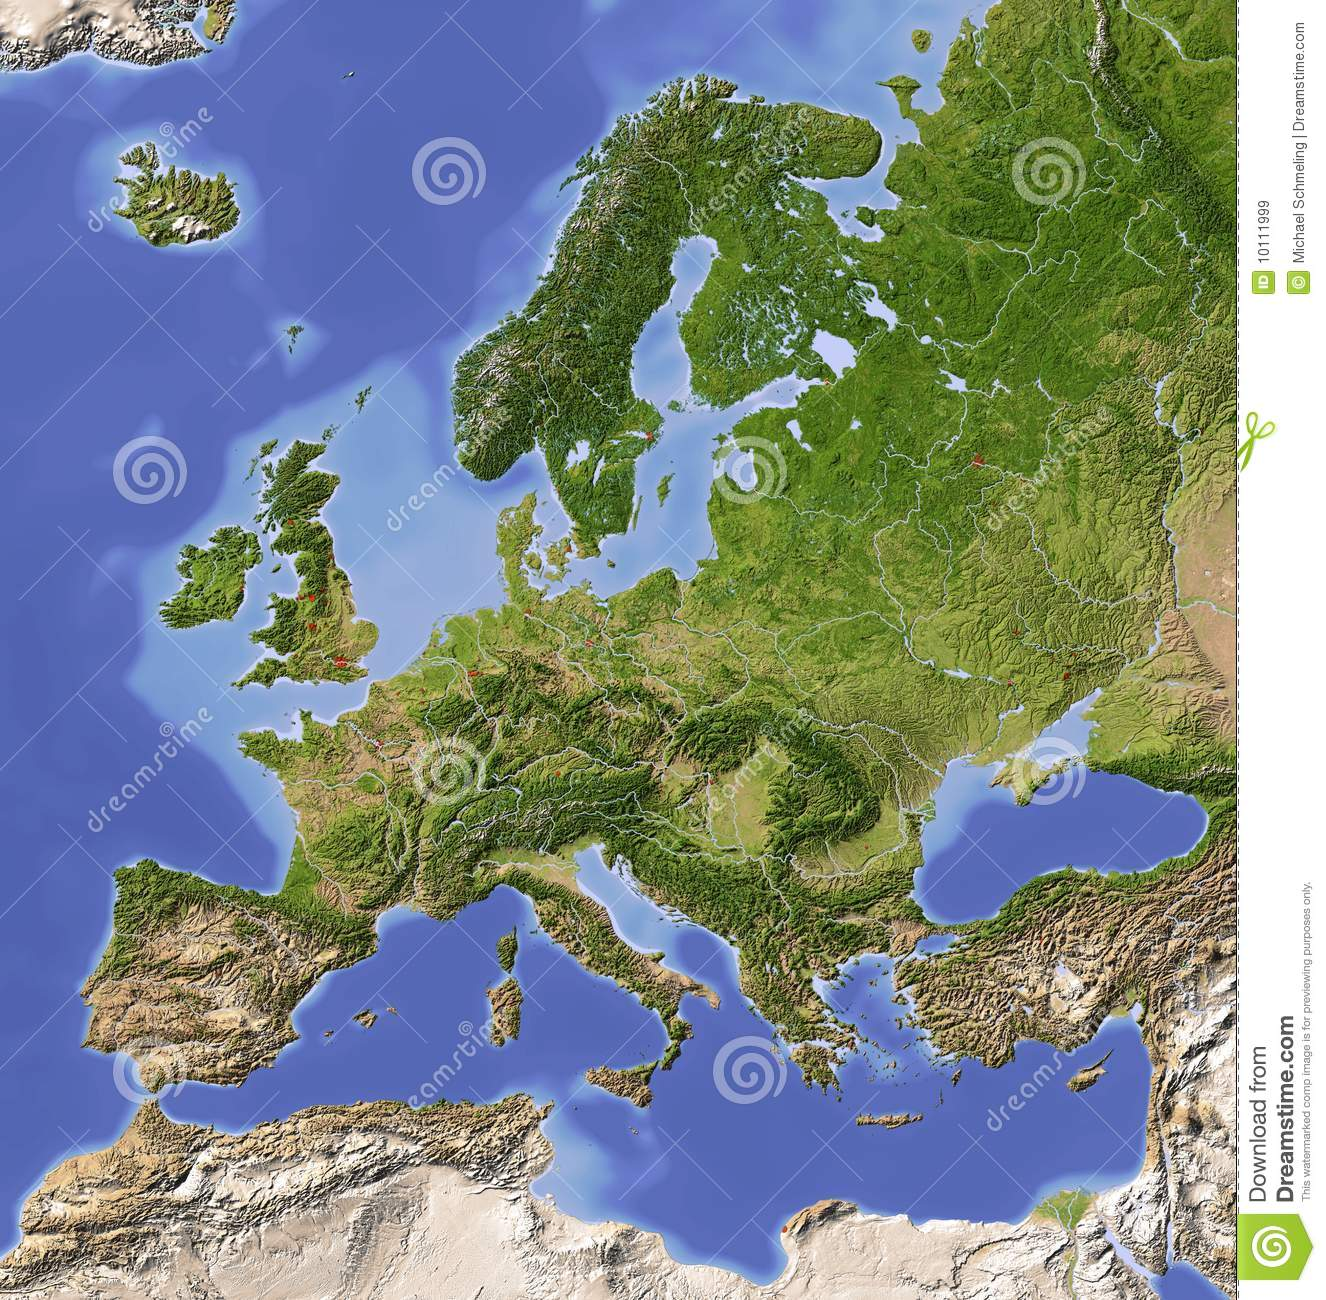 Topographic Map Of Europe Images Galleries With A Bite